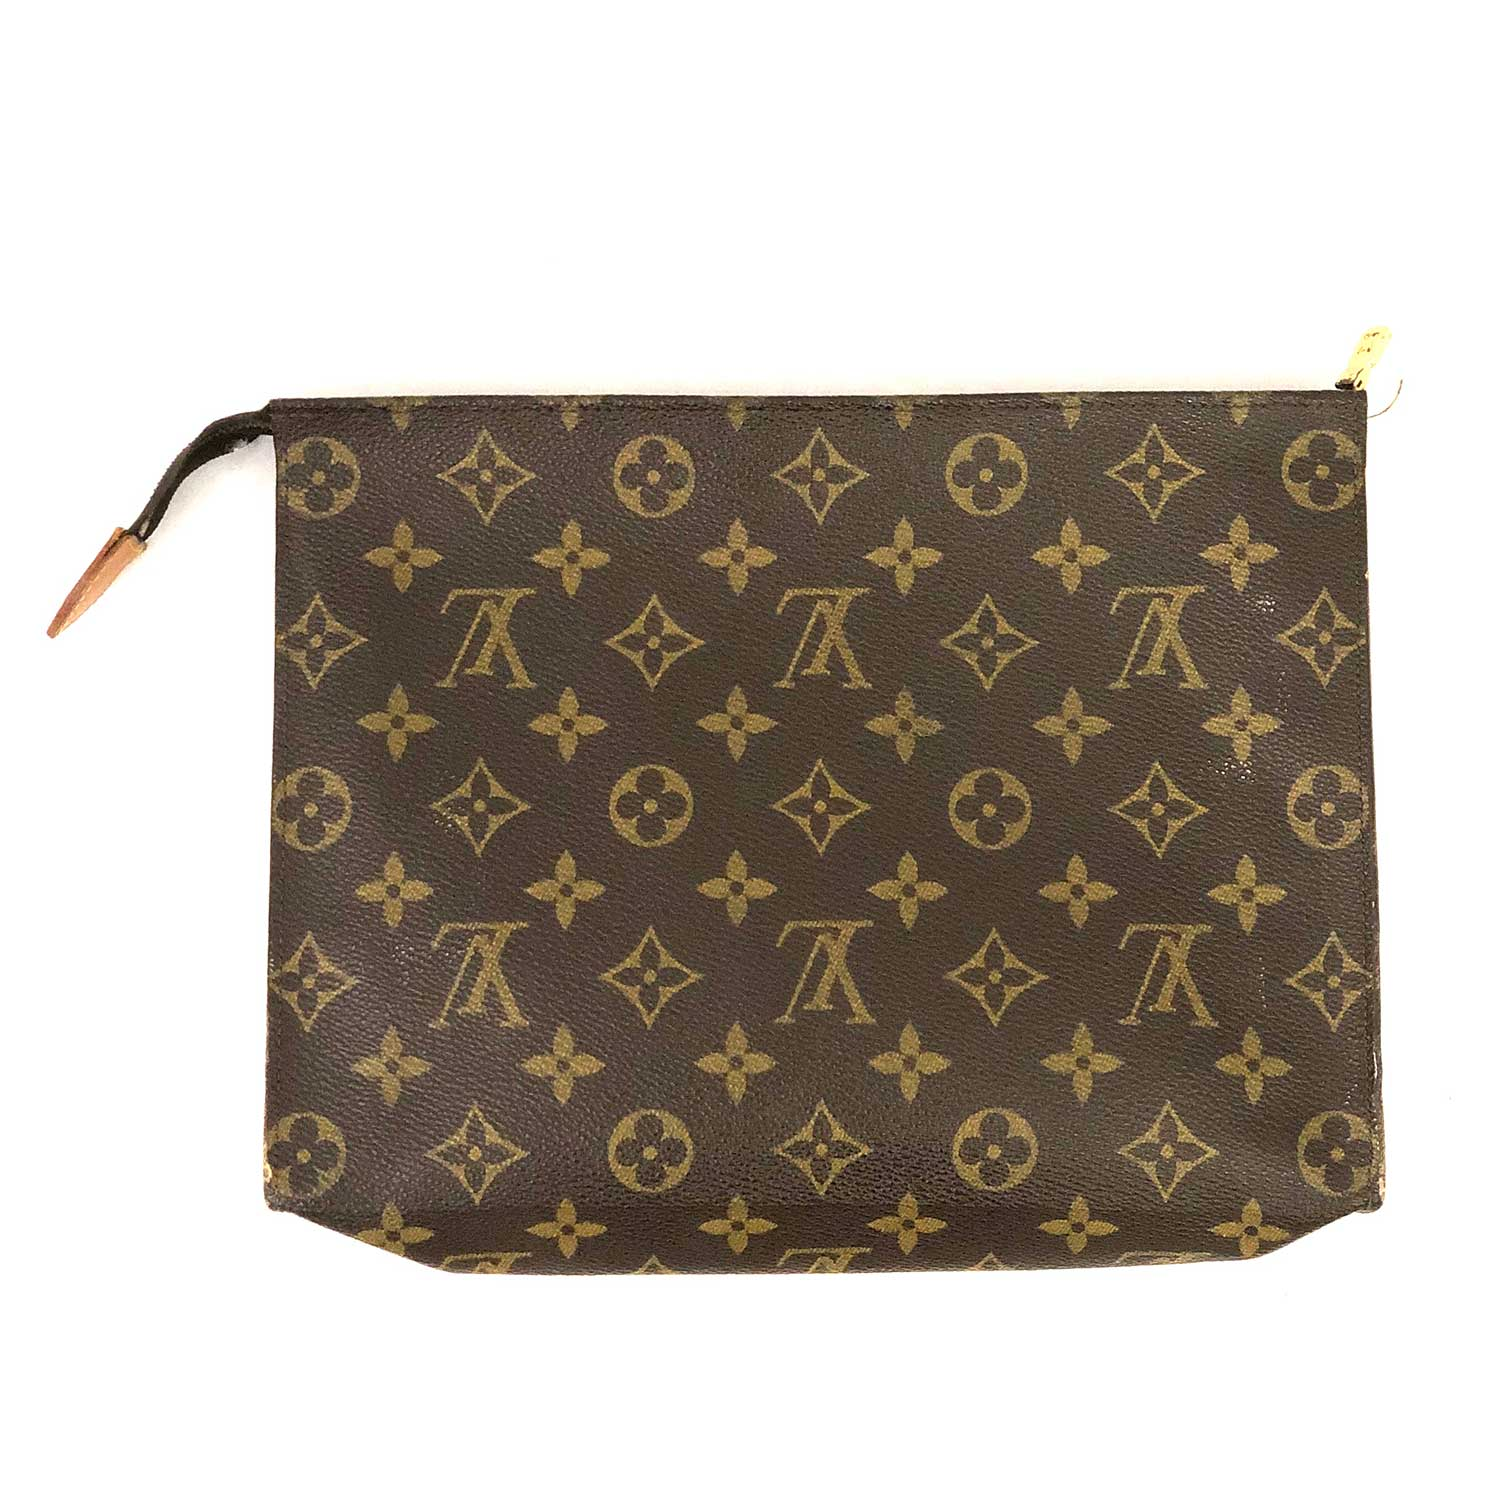 b710d091c Necessaire Louis Vuitton Monogram · Necessaire Louis Vuitton Monogram ...